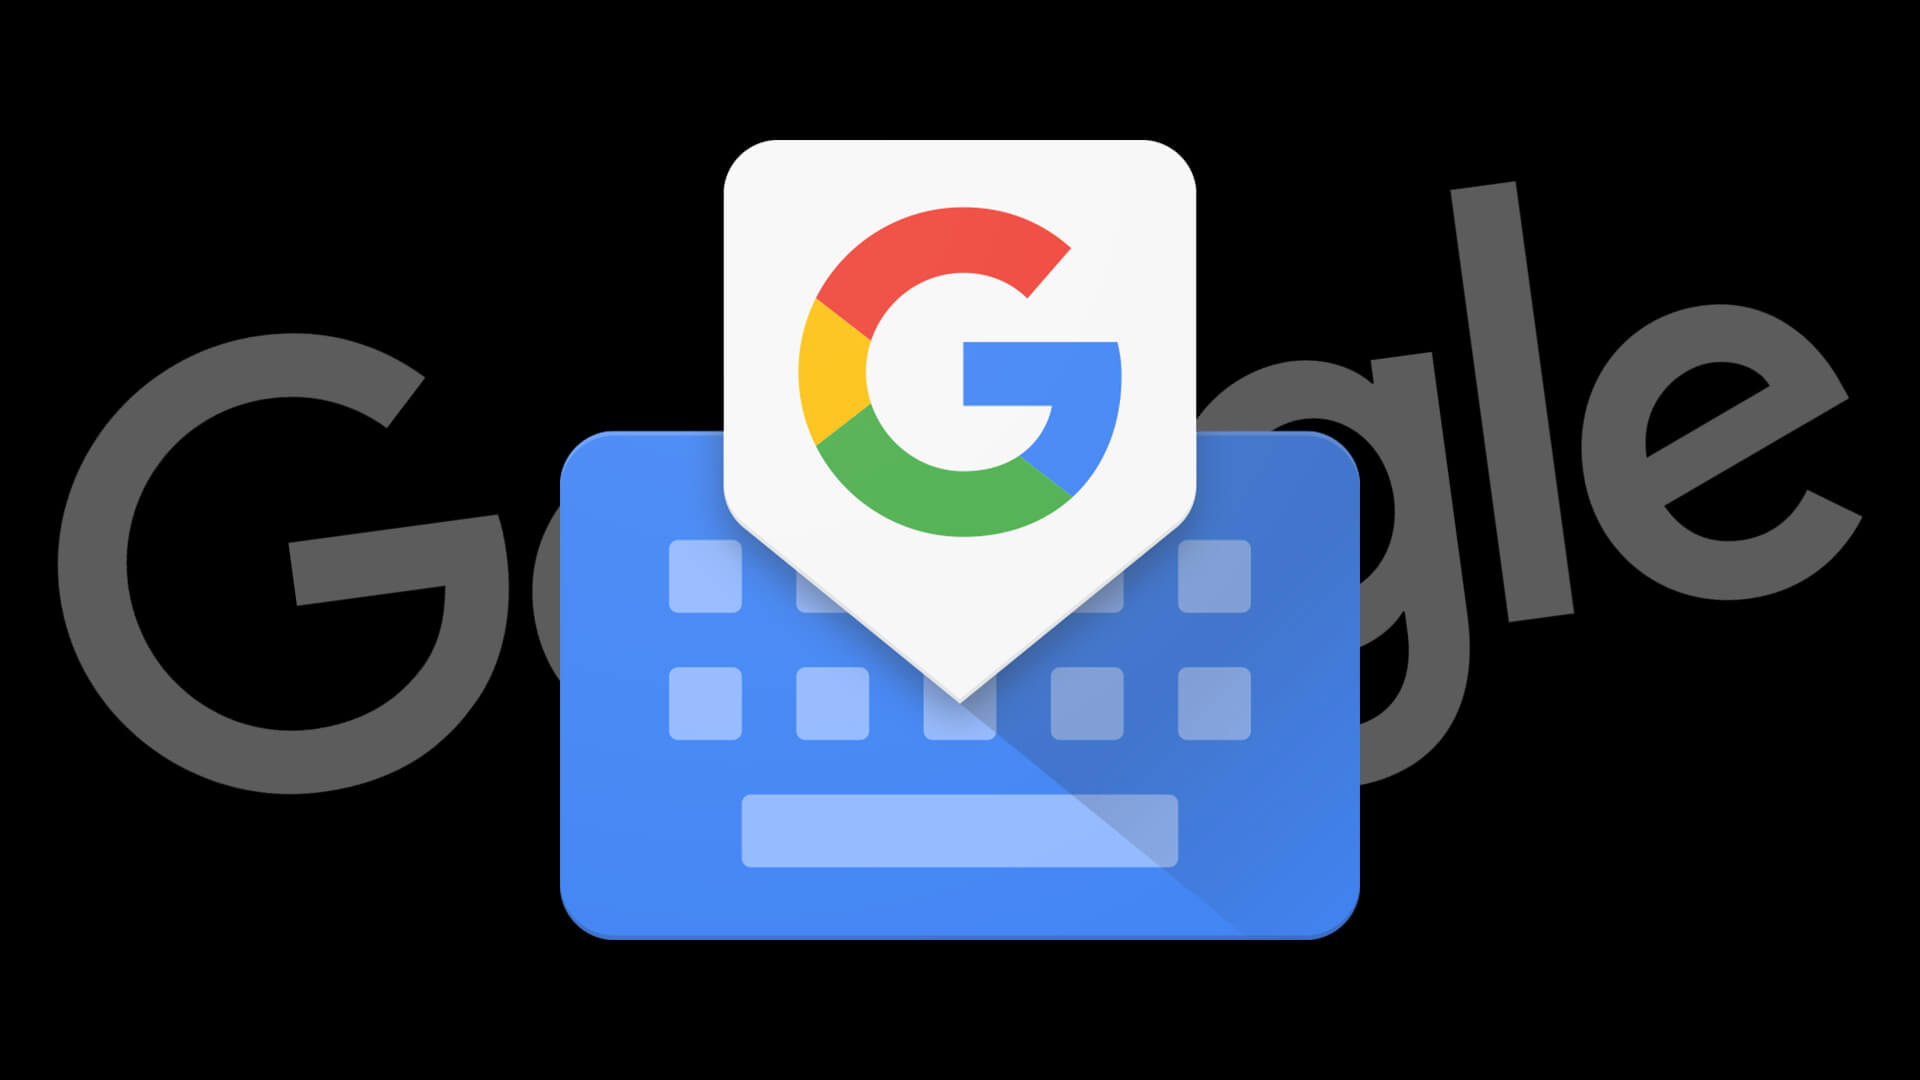 Google Search and Gboard